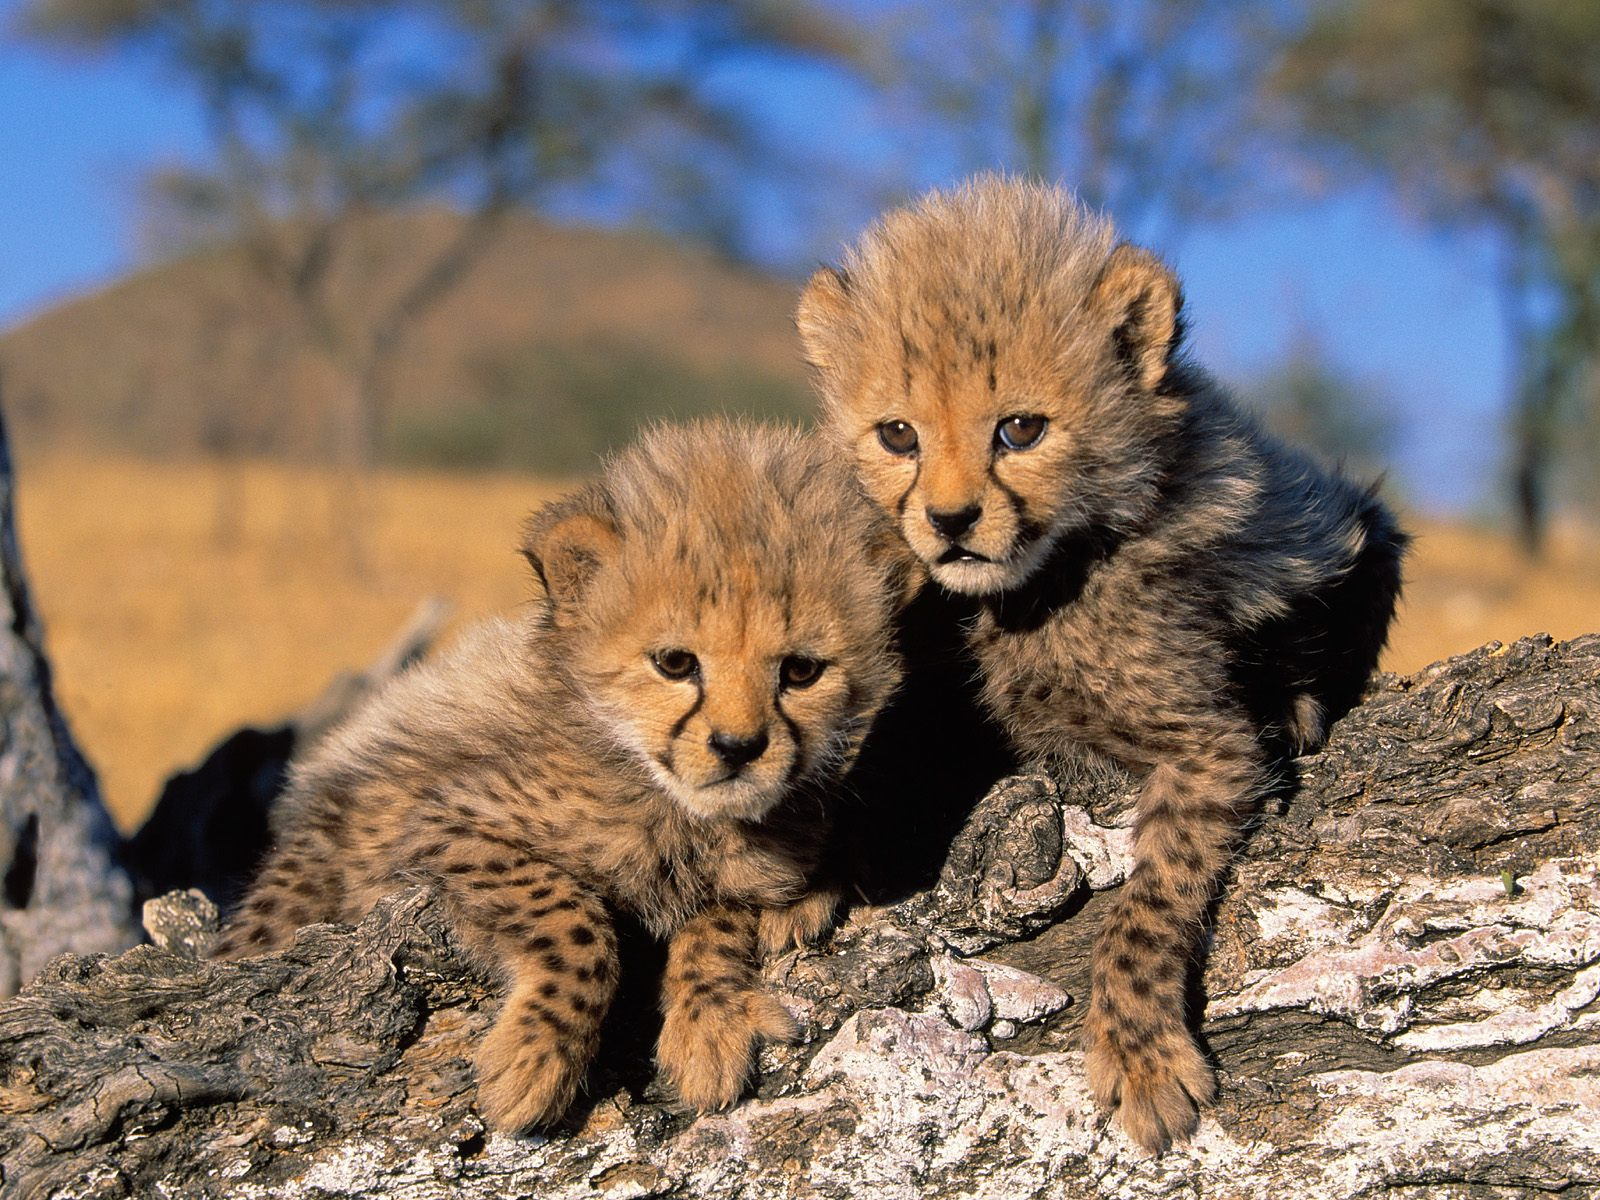 HQ Cheetah Cubs Africa Wallpaper   HQ Wallpapers 1600x1200